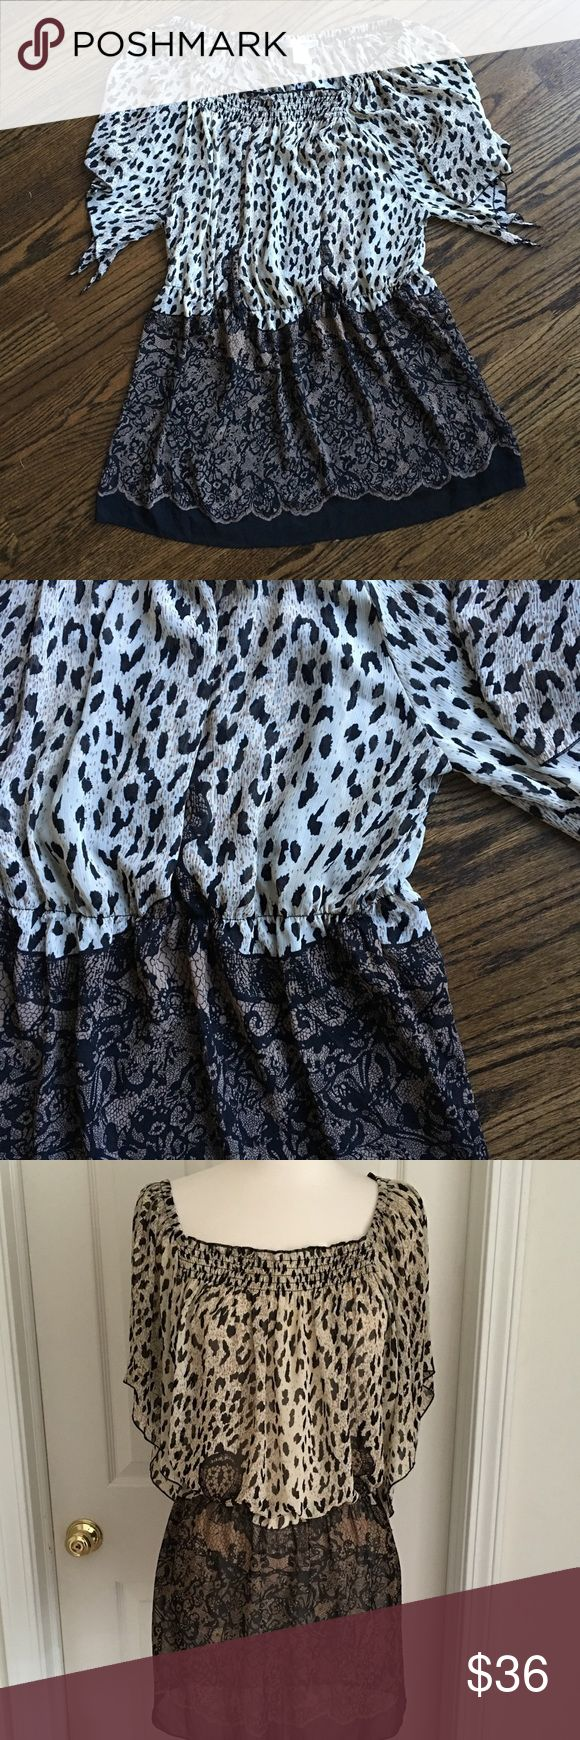 WD NY Woman animal print tunic Meet Elena. She's a soft romantic tunic from WD.NY Woman and she is ready to accompany you to all your holiday events this year. Light flowy fabric in tans, creams and browns skims your body with fluttery batwing short sleeves, an elastic waist to define your middle and darker pattern on the bottom to flatter your figure. Great over jeans, skirts, leggings. Fabric is sheer and looks great with a tank top underneath. 100% polyester, size 2x. WD NY Woman Tops…